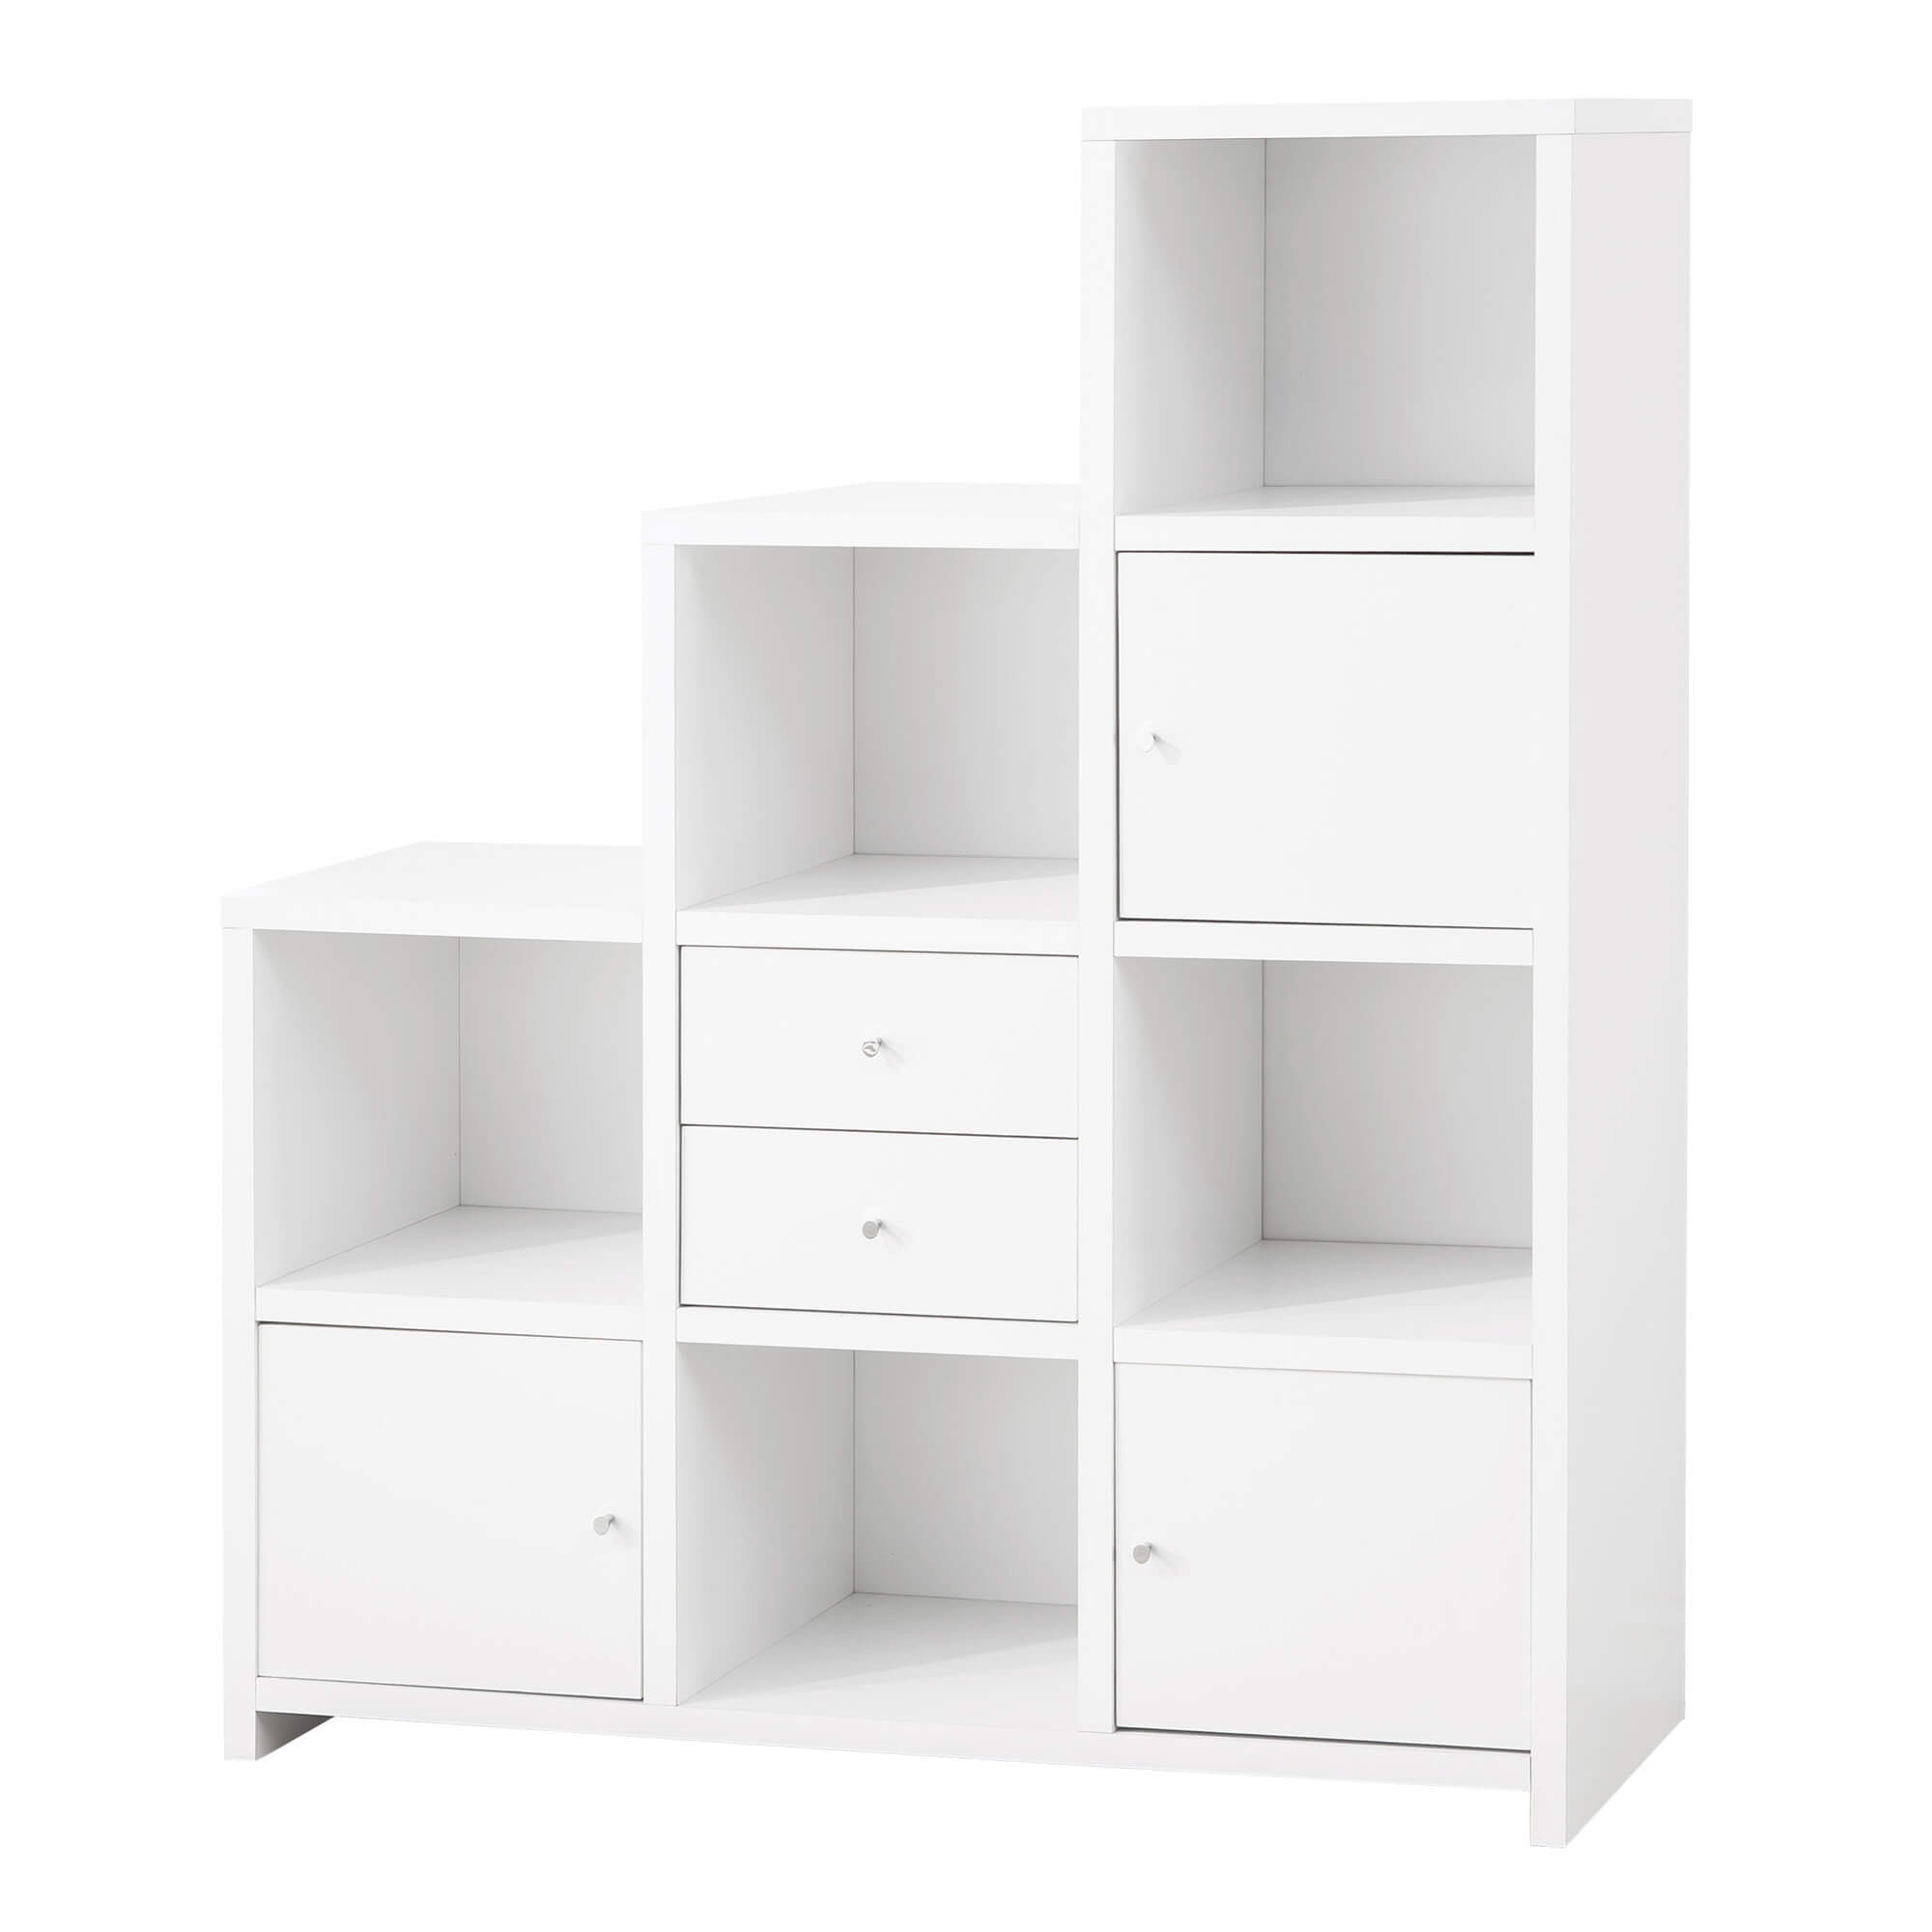 shelves shelf bookcase chest toy organizer bin cubes with storage bookshelf childrens unit white bins baskets desk ikea lack box